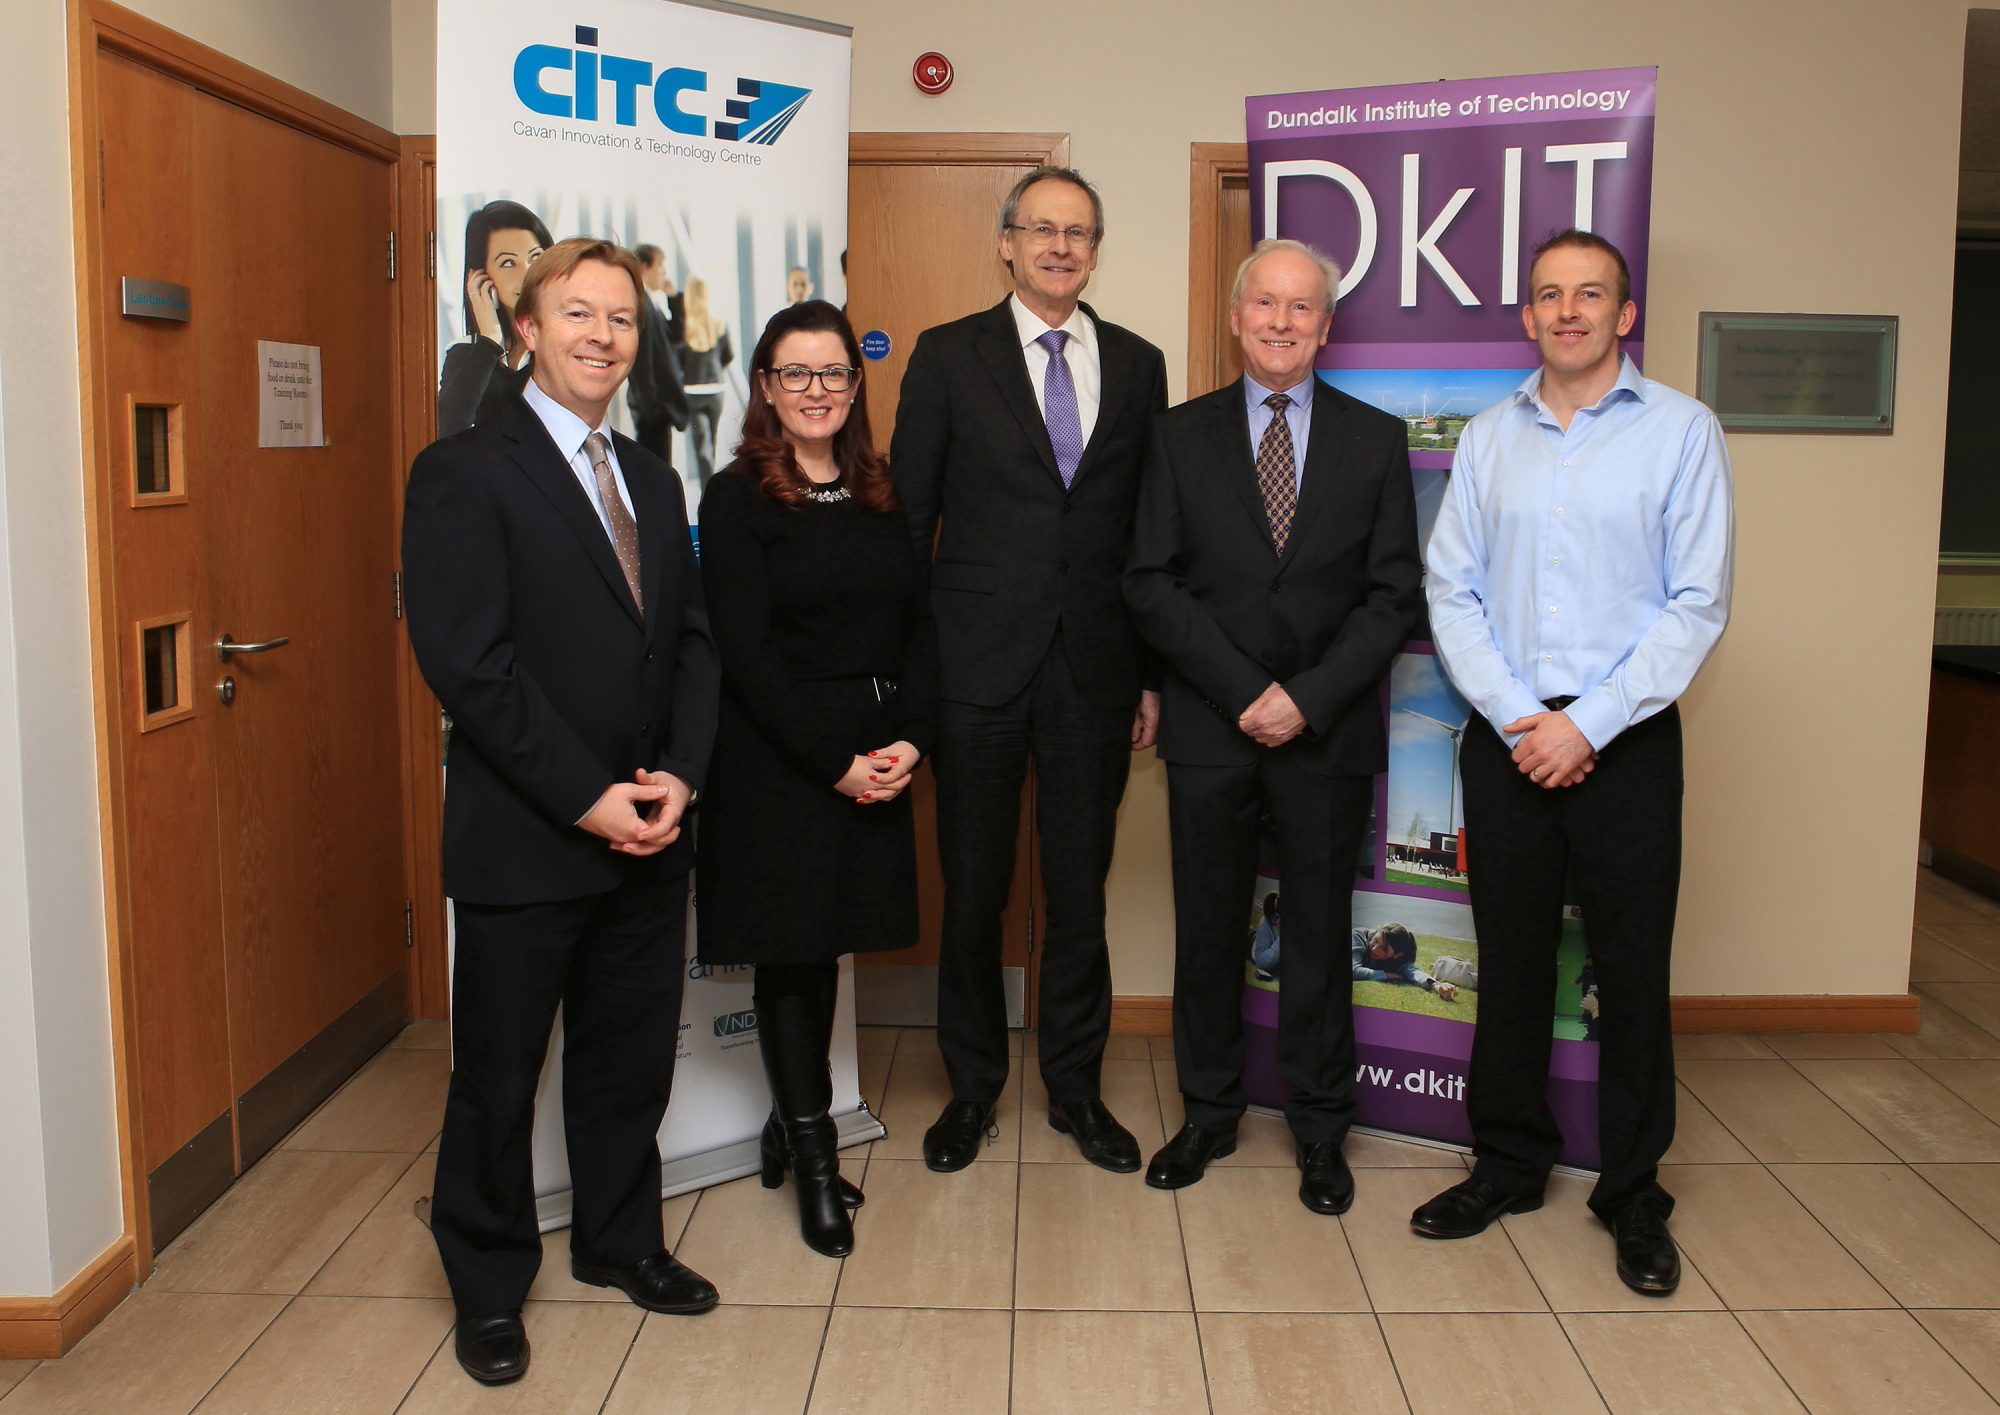 Pictured (l-r) are Anton Barrett, Head of Lifelong Learning, DkIT; Marcella Rudden, Head of Enterprise, Cavan Local Enterprise Office; Michael Mulvey, PhD, DkIT President; Vincent Reynolds, Chief Executive, Cavan Innovation & Technology Centre and Neil Larkin, DkIT Lecturer at the launch of the new Cert in Data Analytics for Business course at CITC.